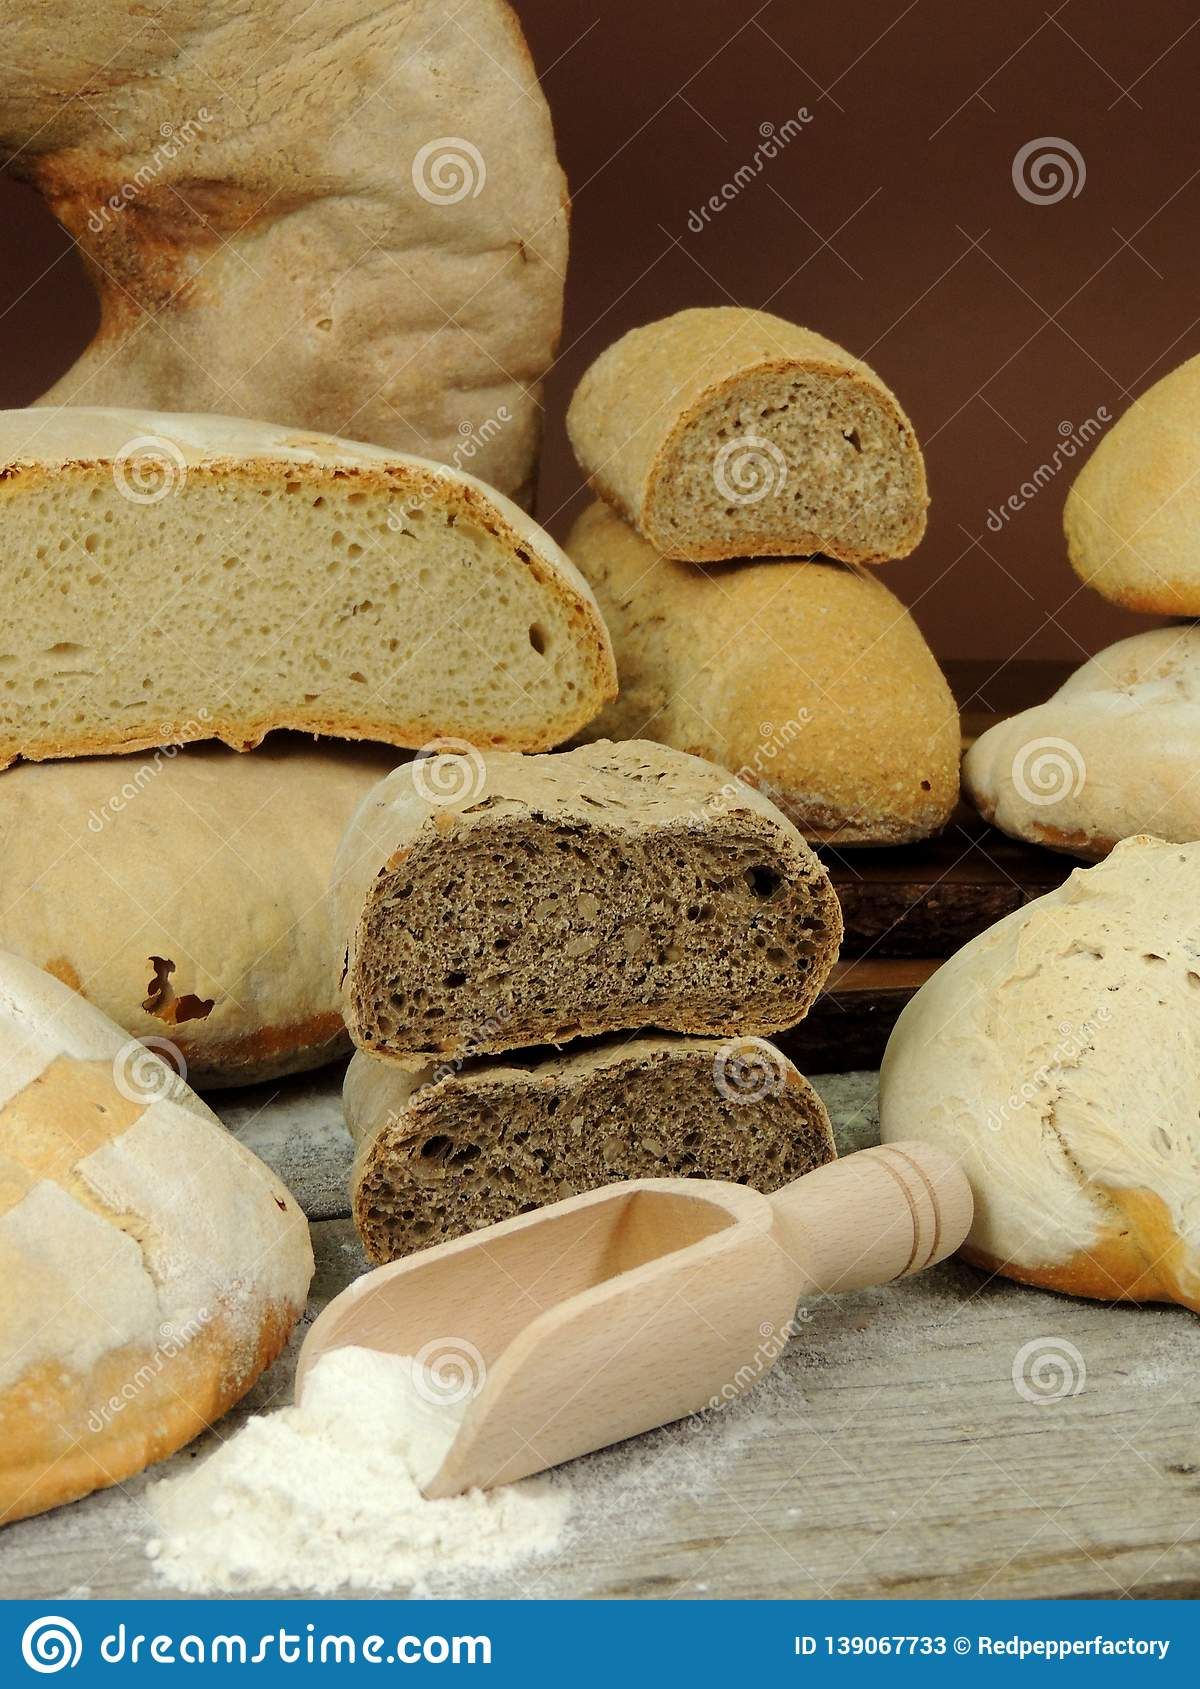 Various types of bread, white and whole grain bread loafs fresh